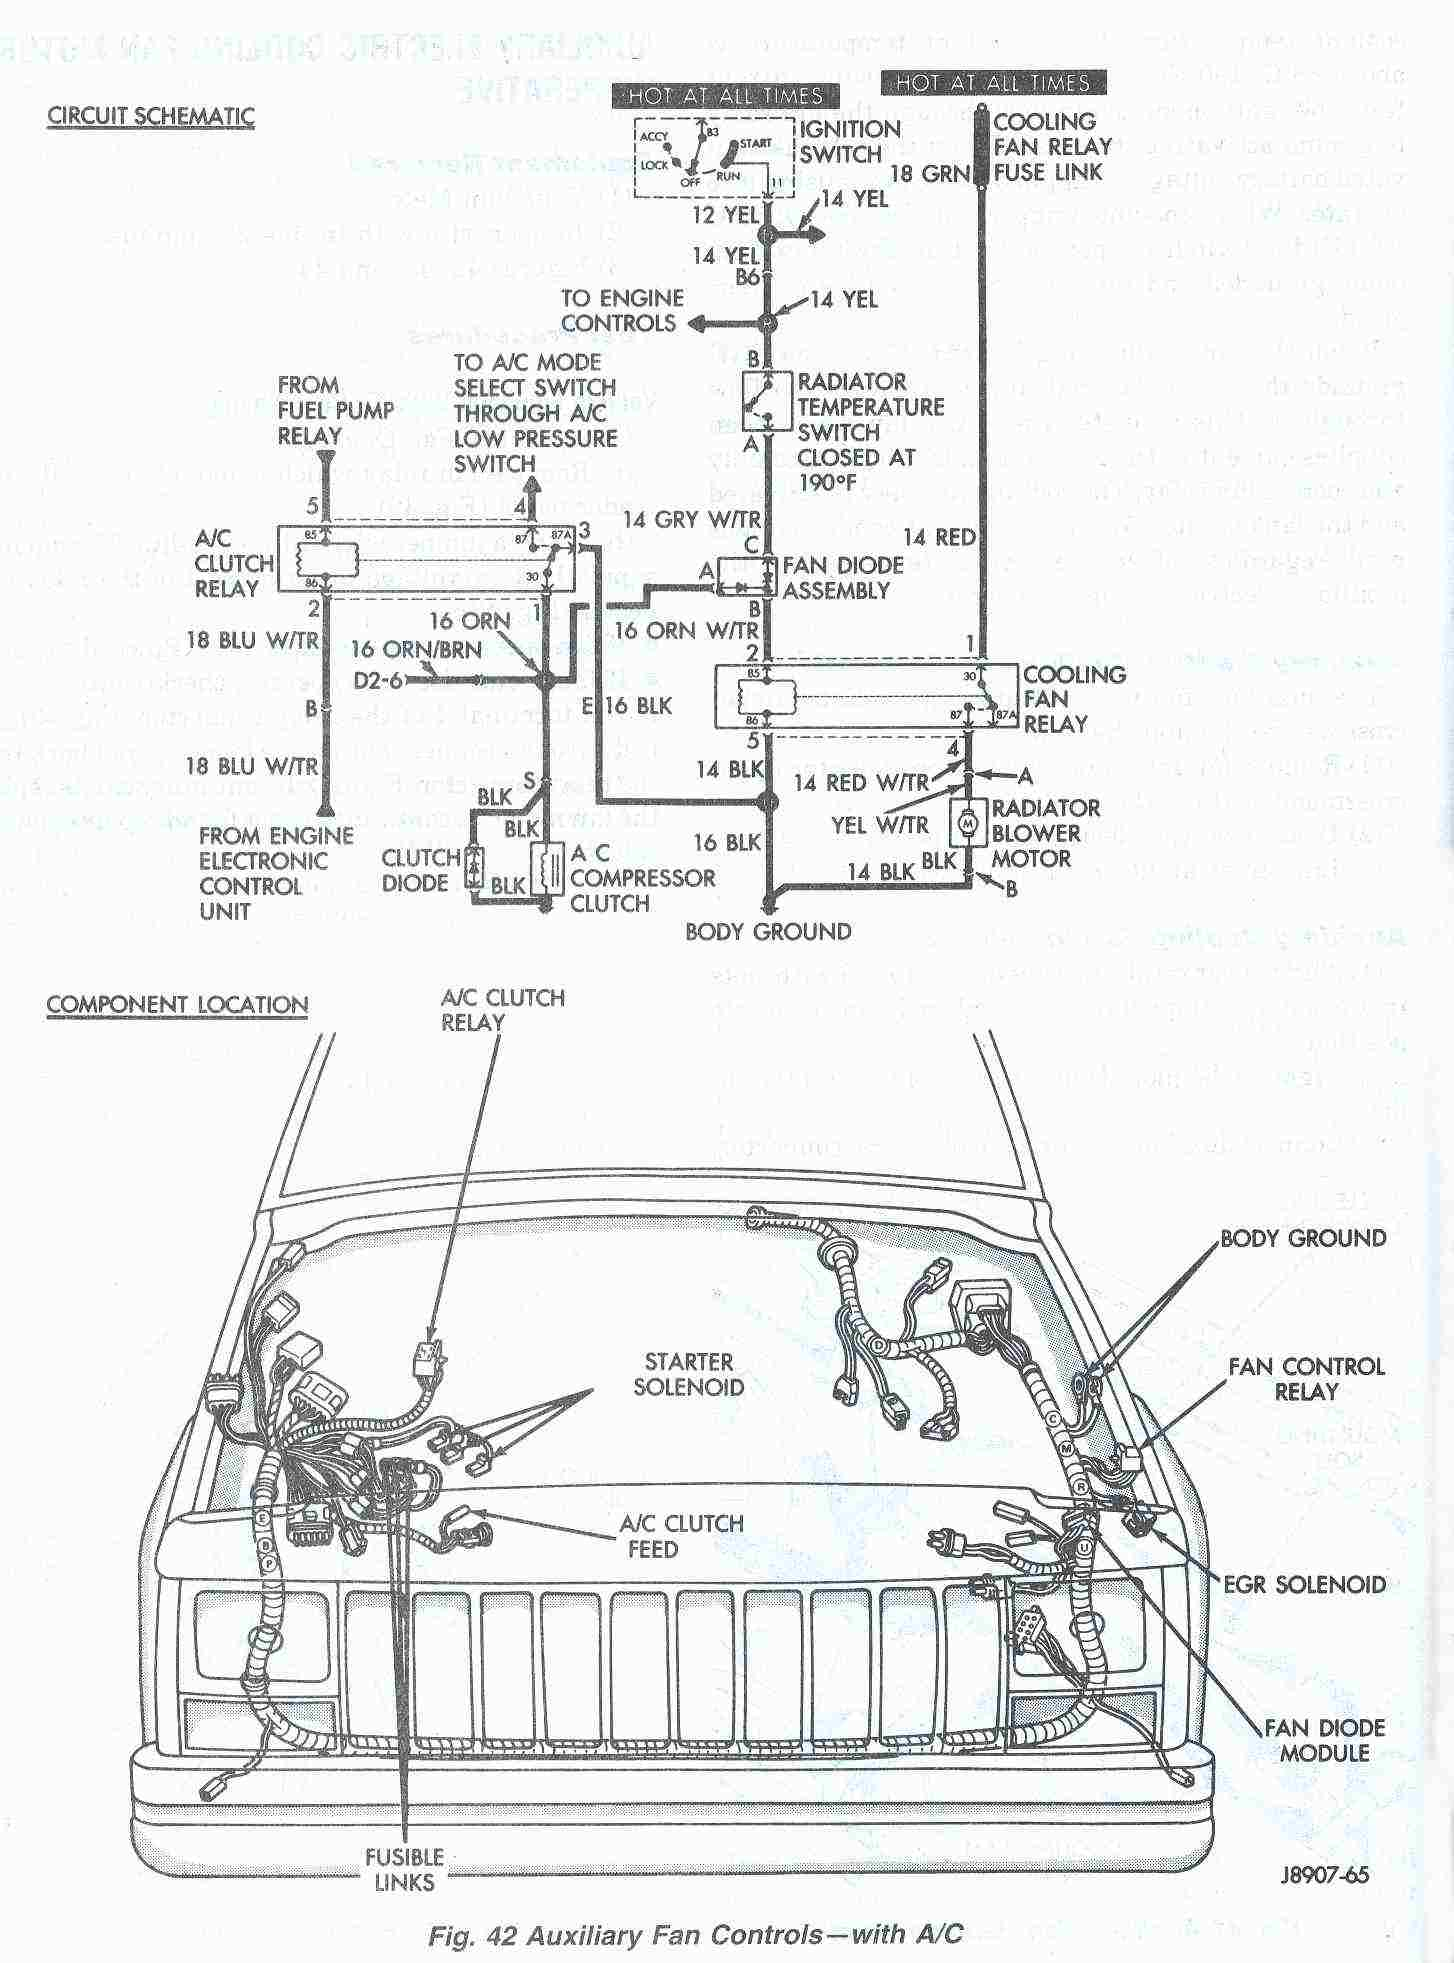 Auxiliary Fan Schematic Fig on 98 Jeep Cherokee Fuse Diagram